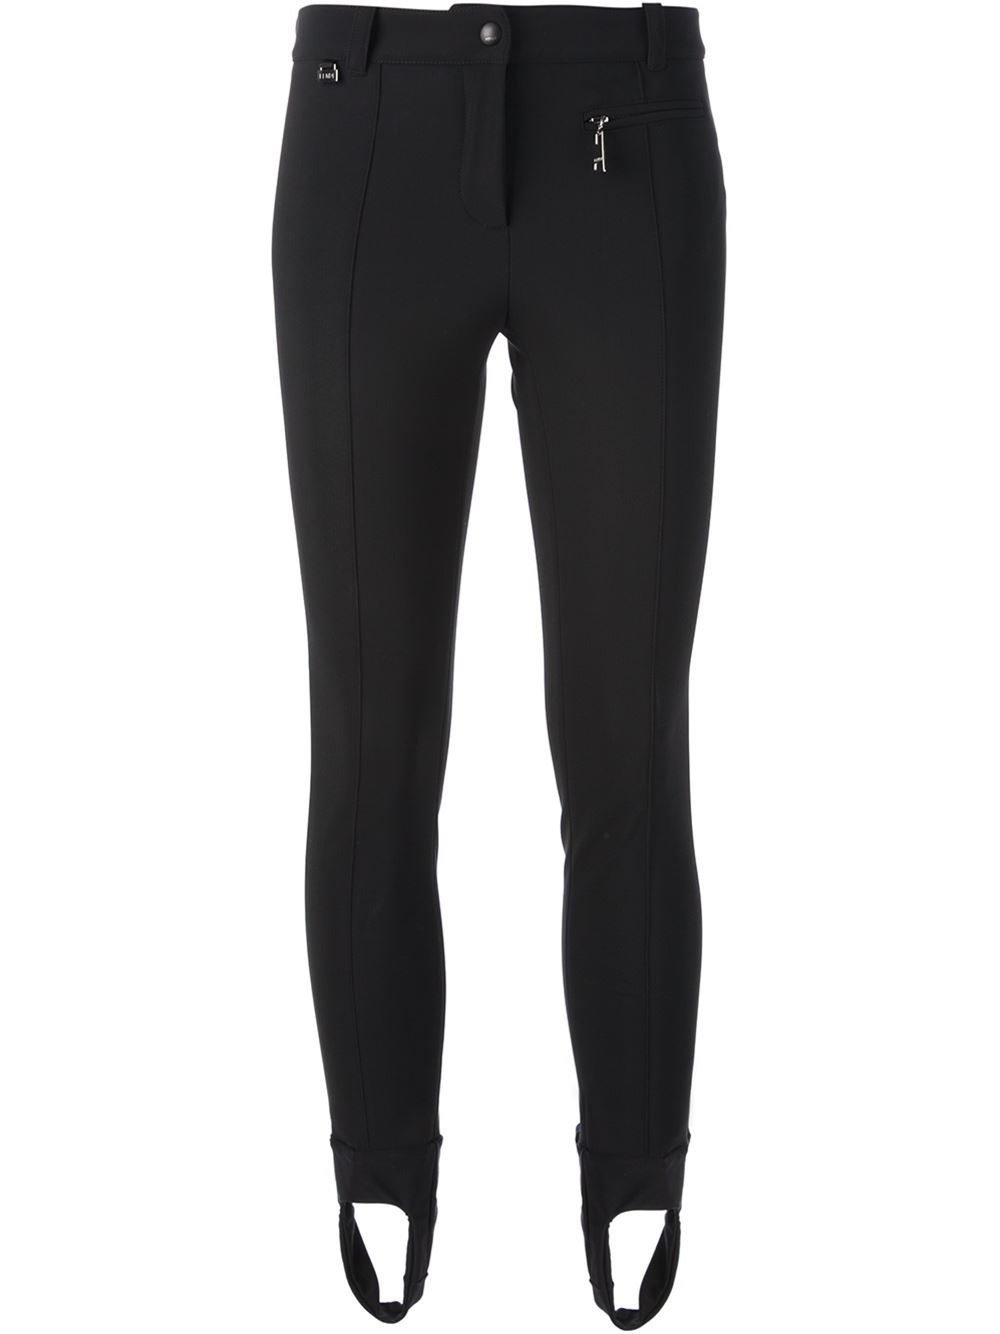 Stirrup trousers Fendi Cheap Sale Supply Clearance Largest Supplier Cool OTgYc24